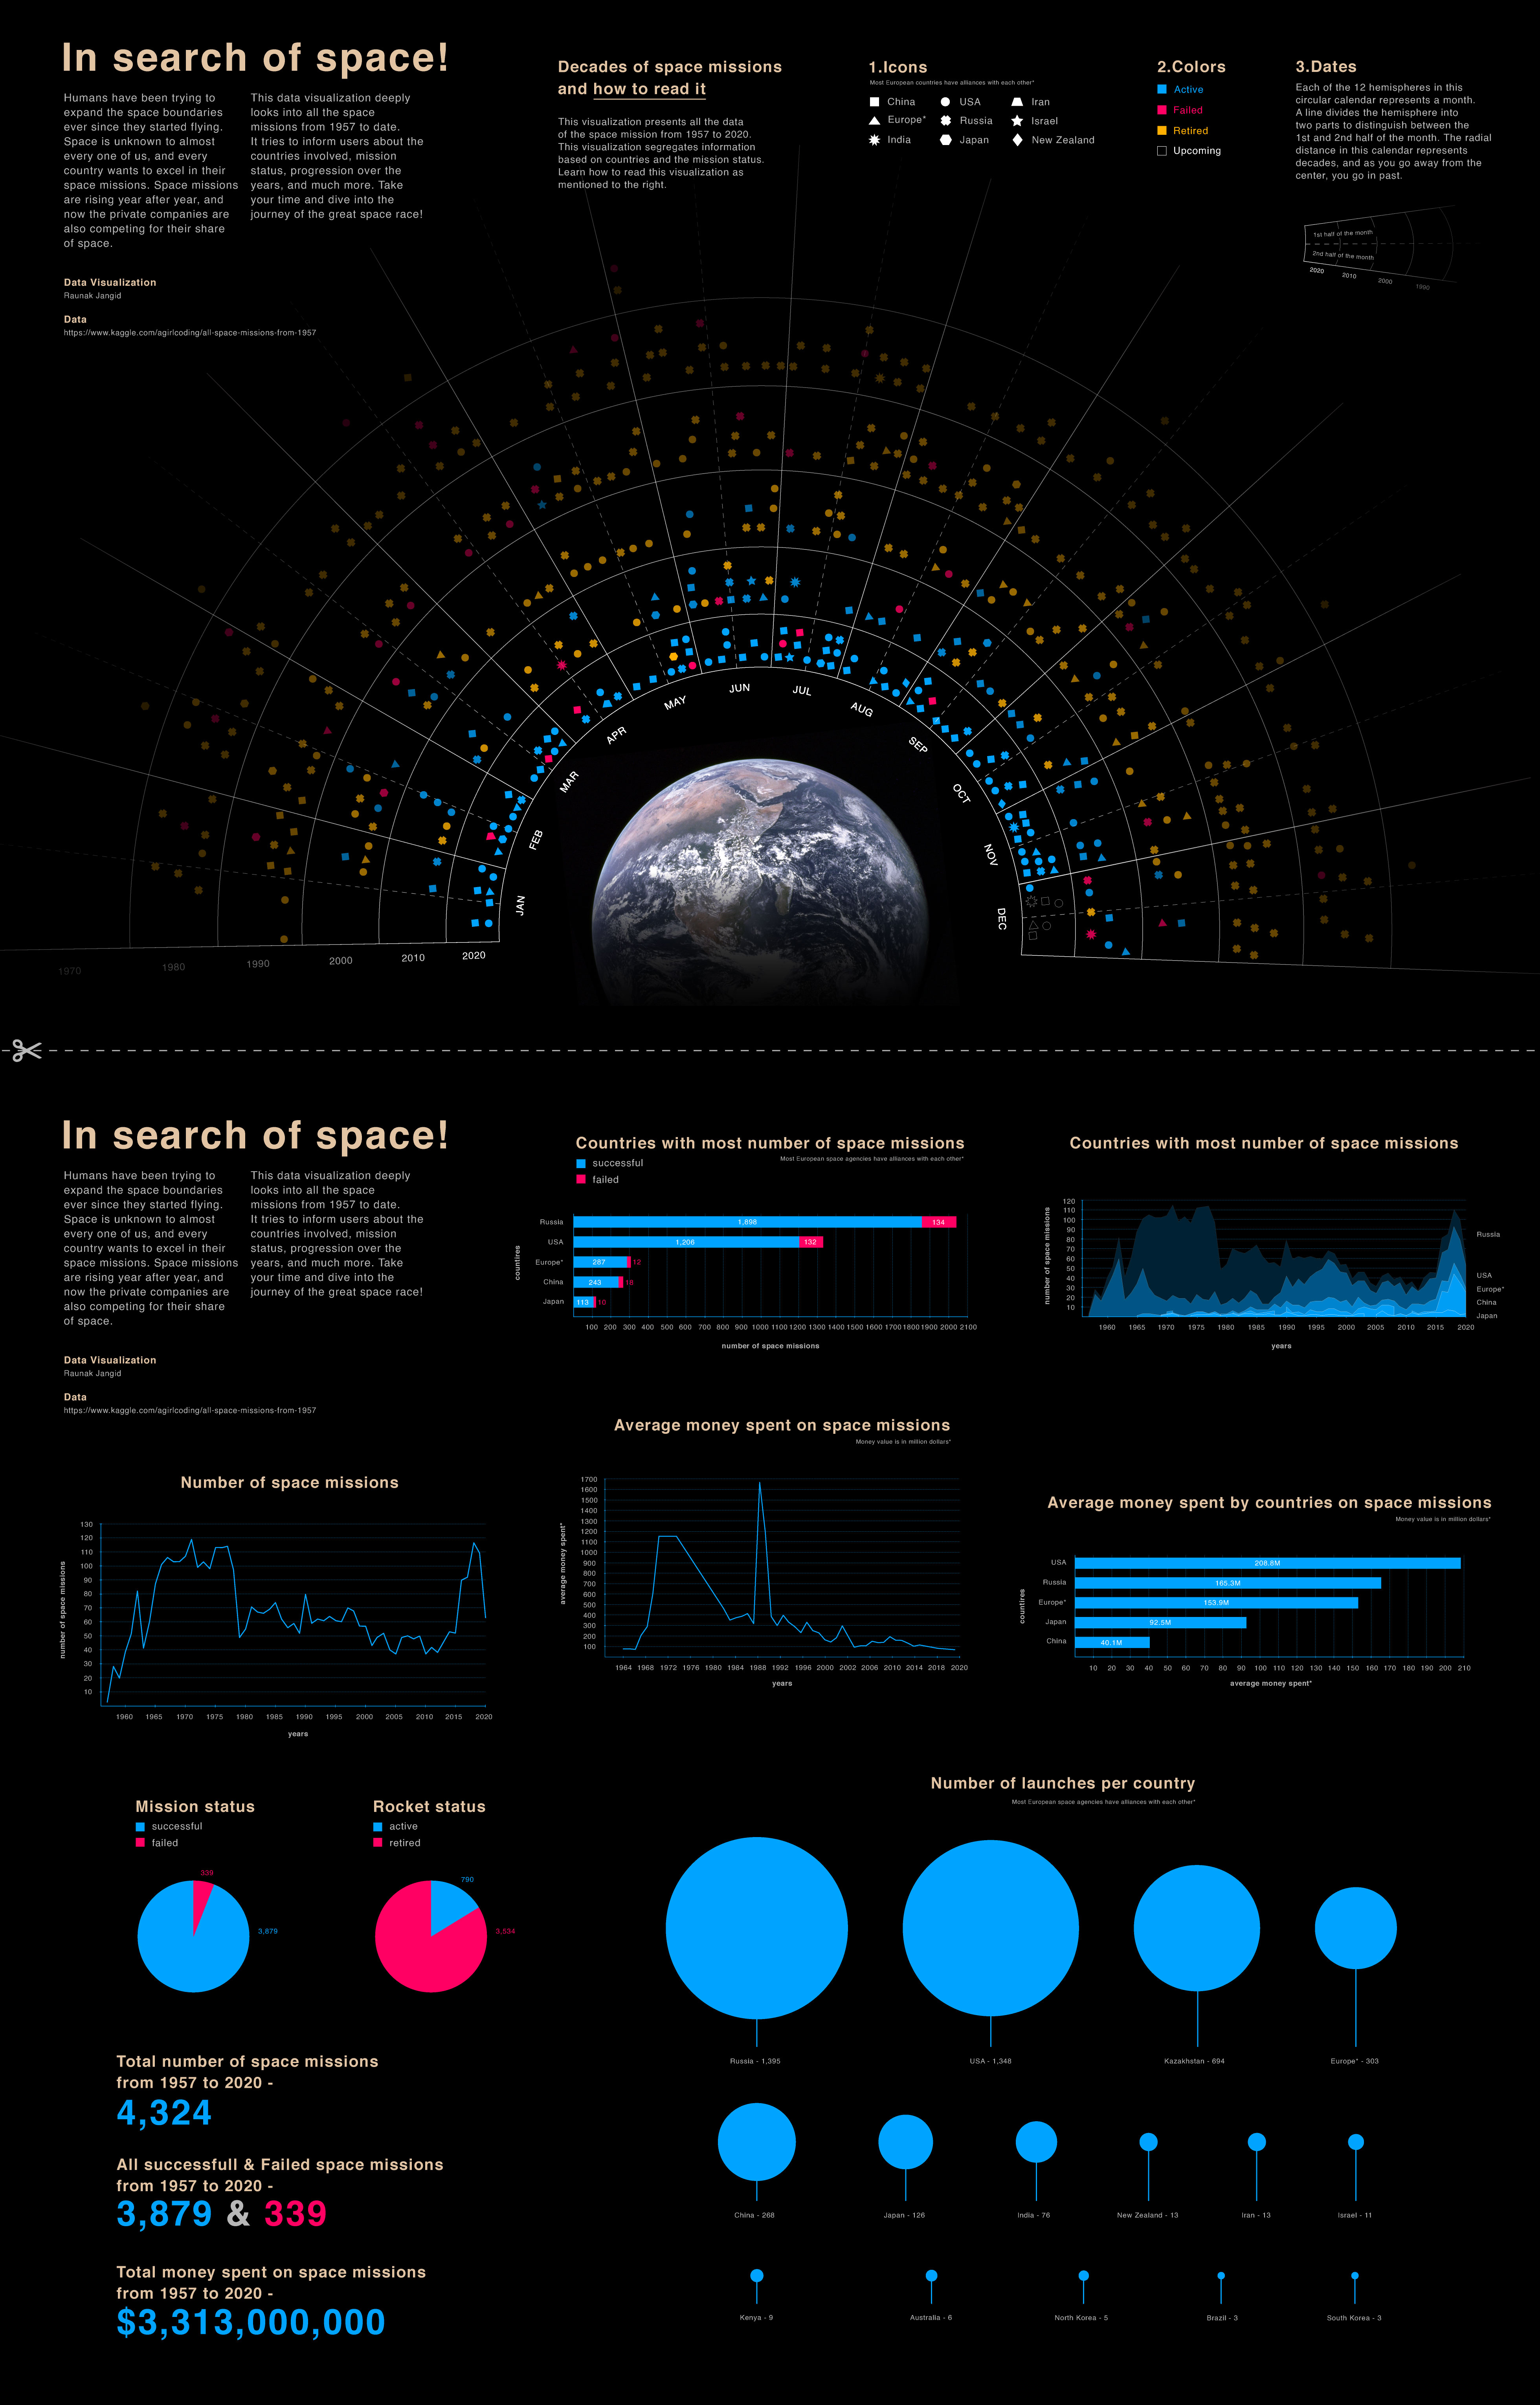 Final data visualization for In Search of Space